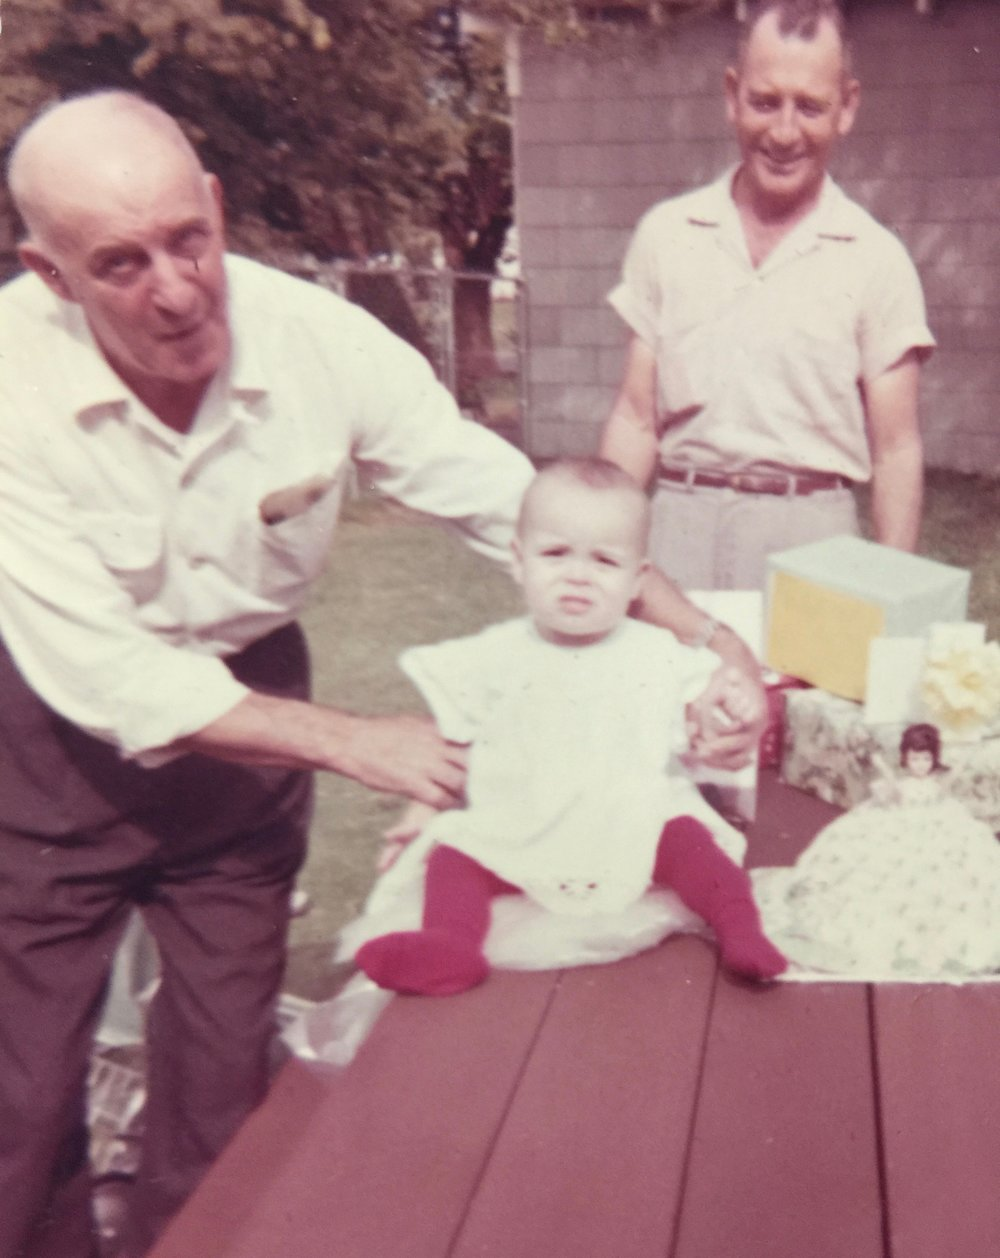 My beloved grandfather, Obie Rambin, me and my other wonderful grandfather, Paul Kincaid, on my first birthday.